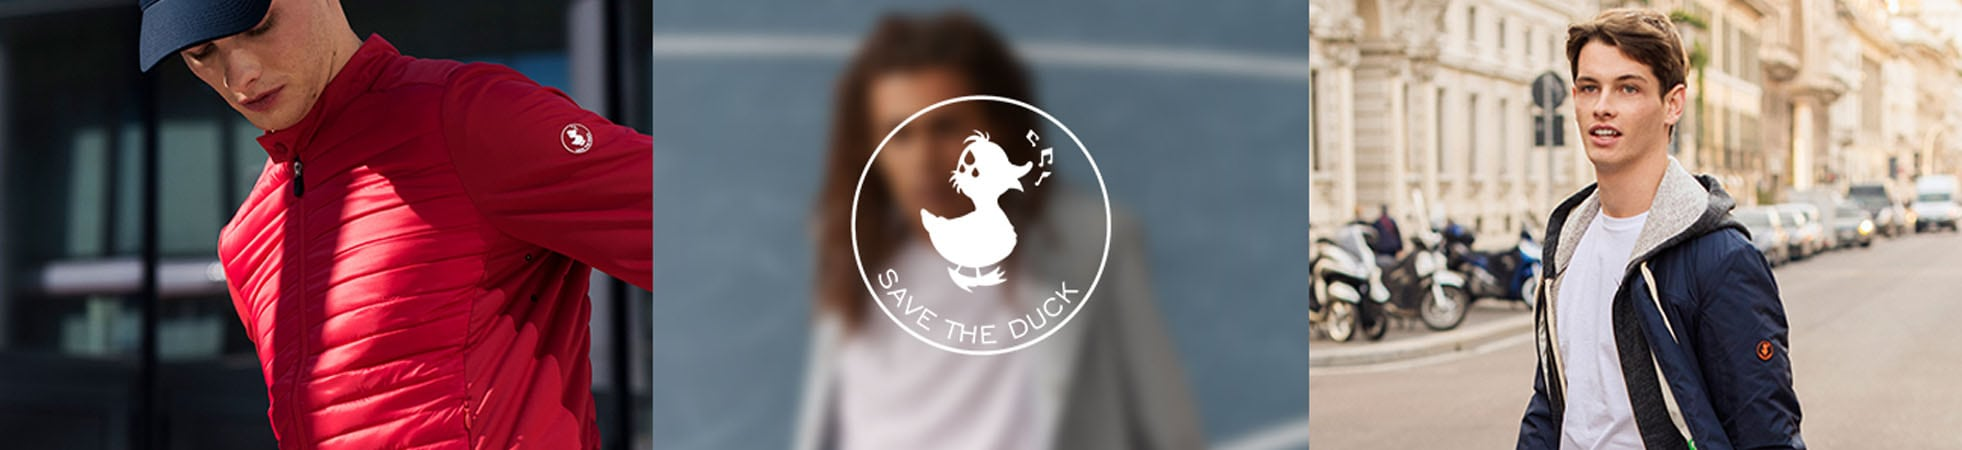 Groen Save the Duck herenkleding